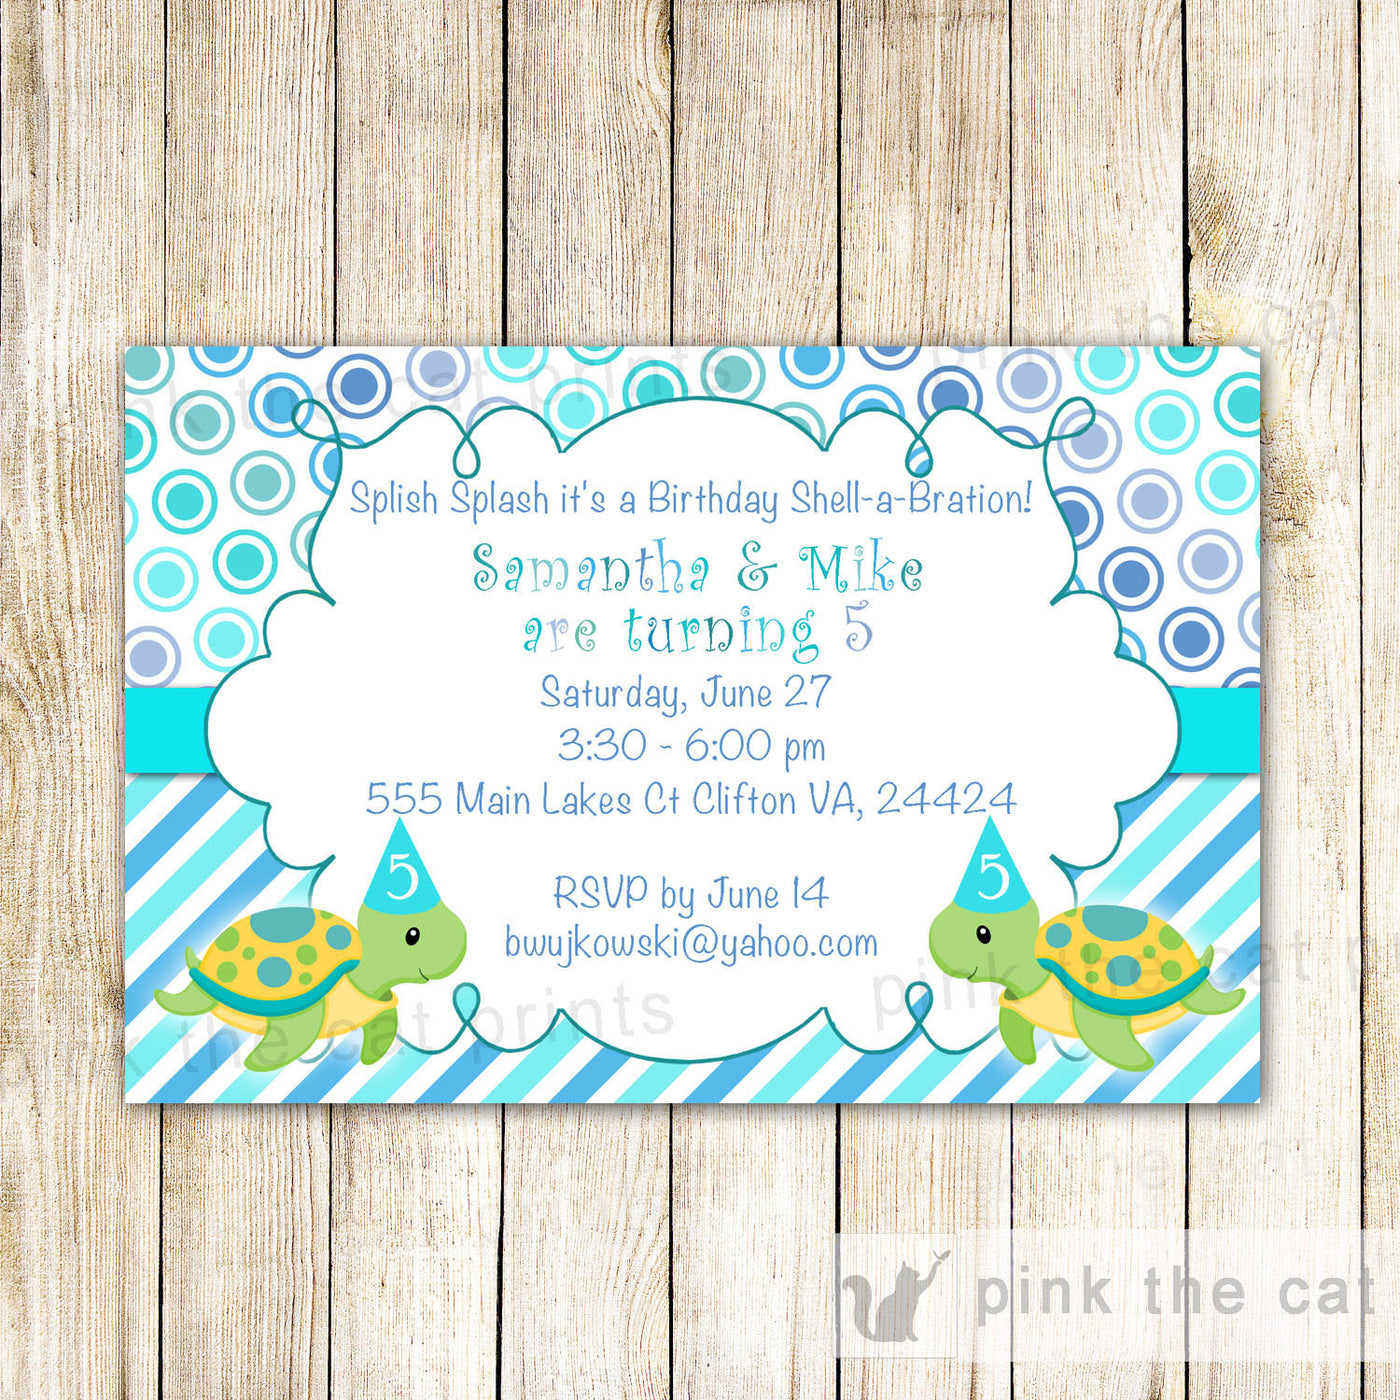 Twins Invitation Kids Birthday Party Girl Boy Pink The Cat